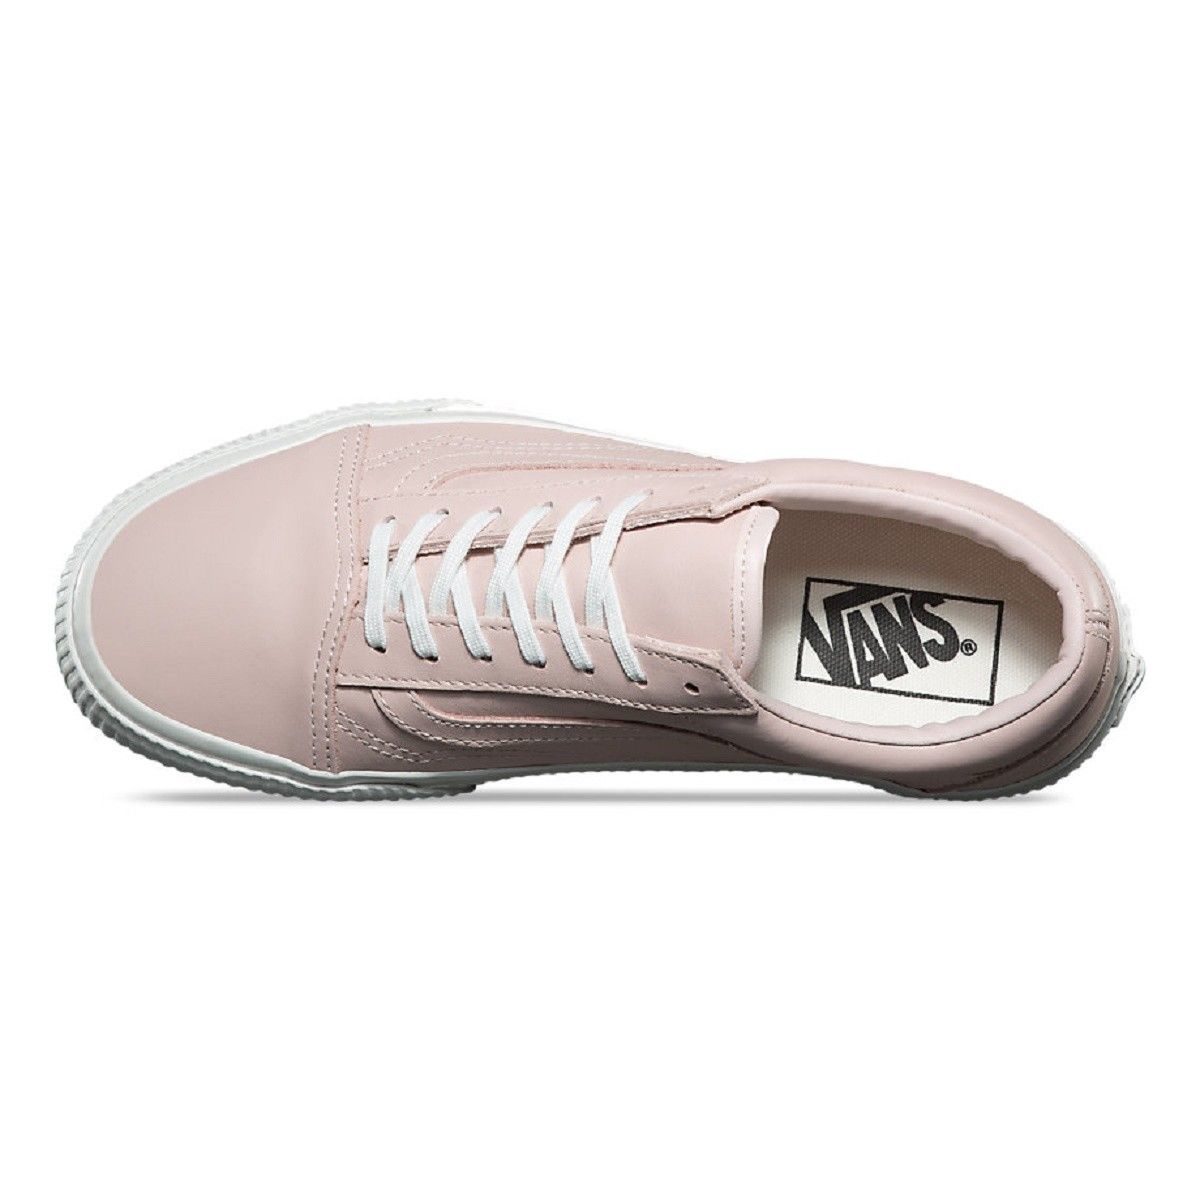 Vans Old Skool (Embossed Sidewall) Sepia Rose Mens 8.5 Womens 10